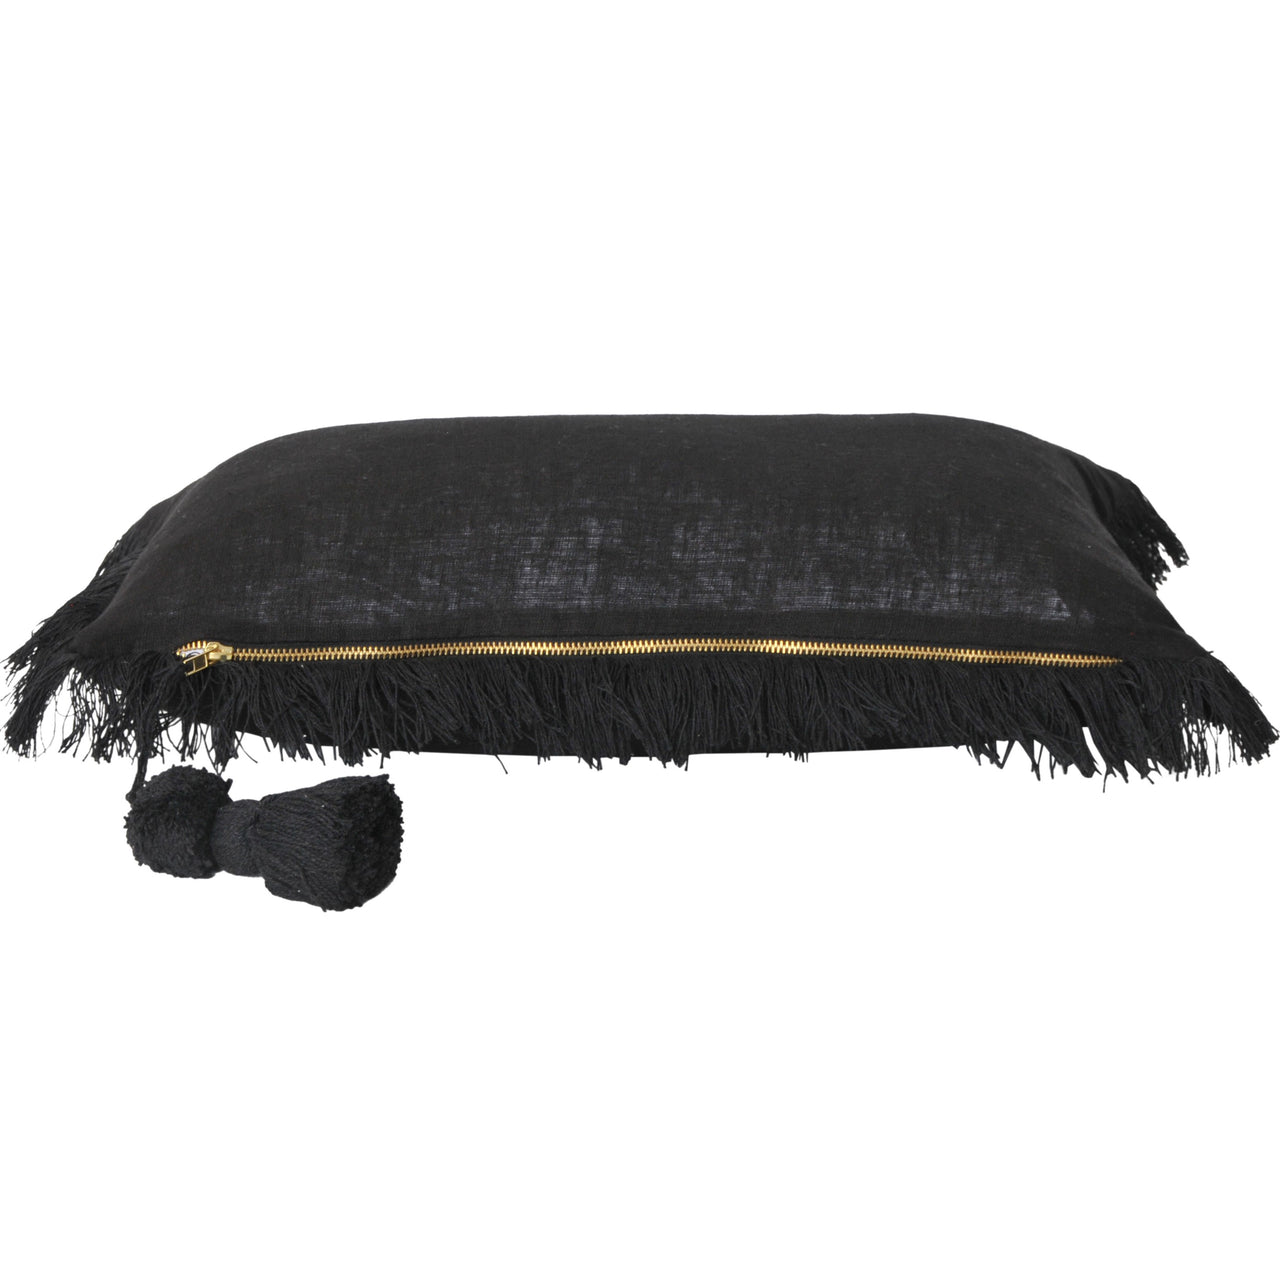 Lola Linen Lumbar Cushion- Black